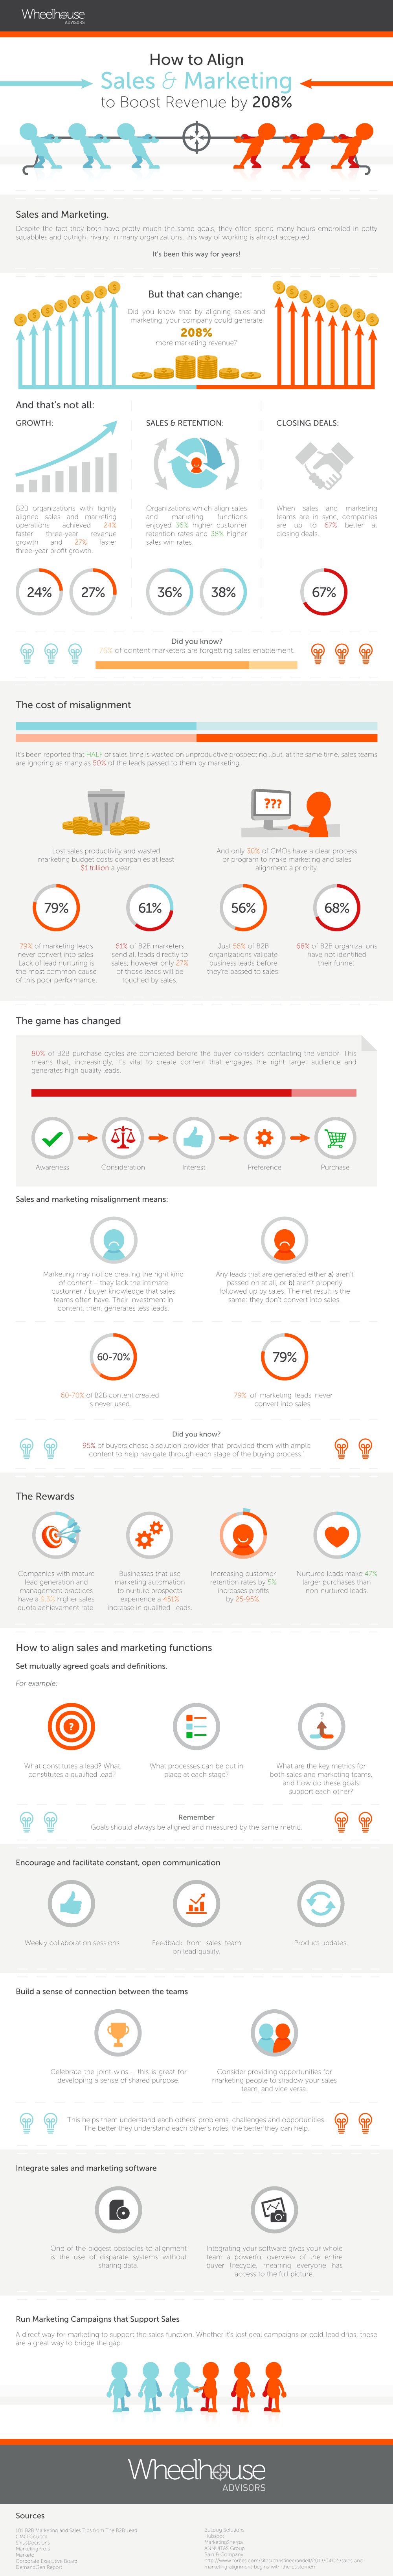 smarketing-infographic-wheelhouse